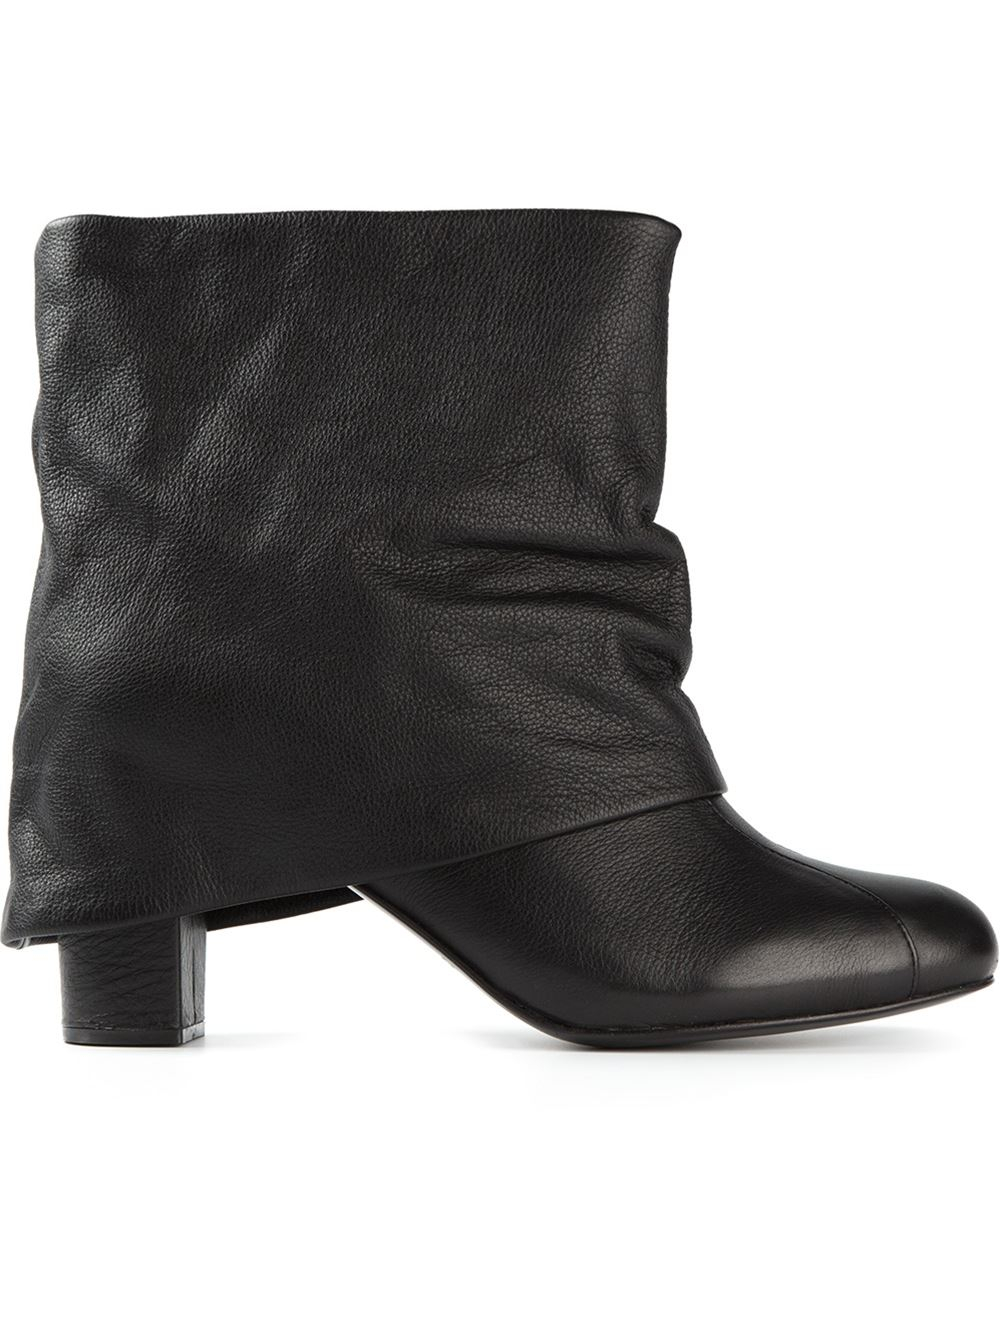 c7b82d2231d1 Lyst - See By Chloé Slouchy Cuffed Boots in Black